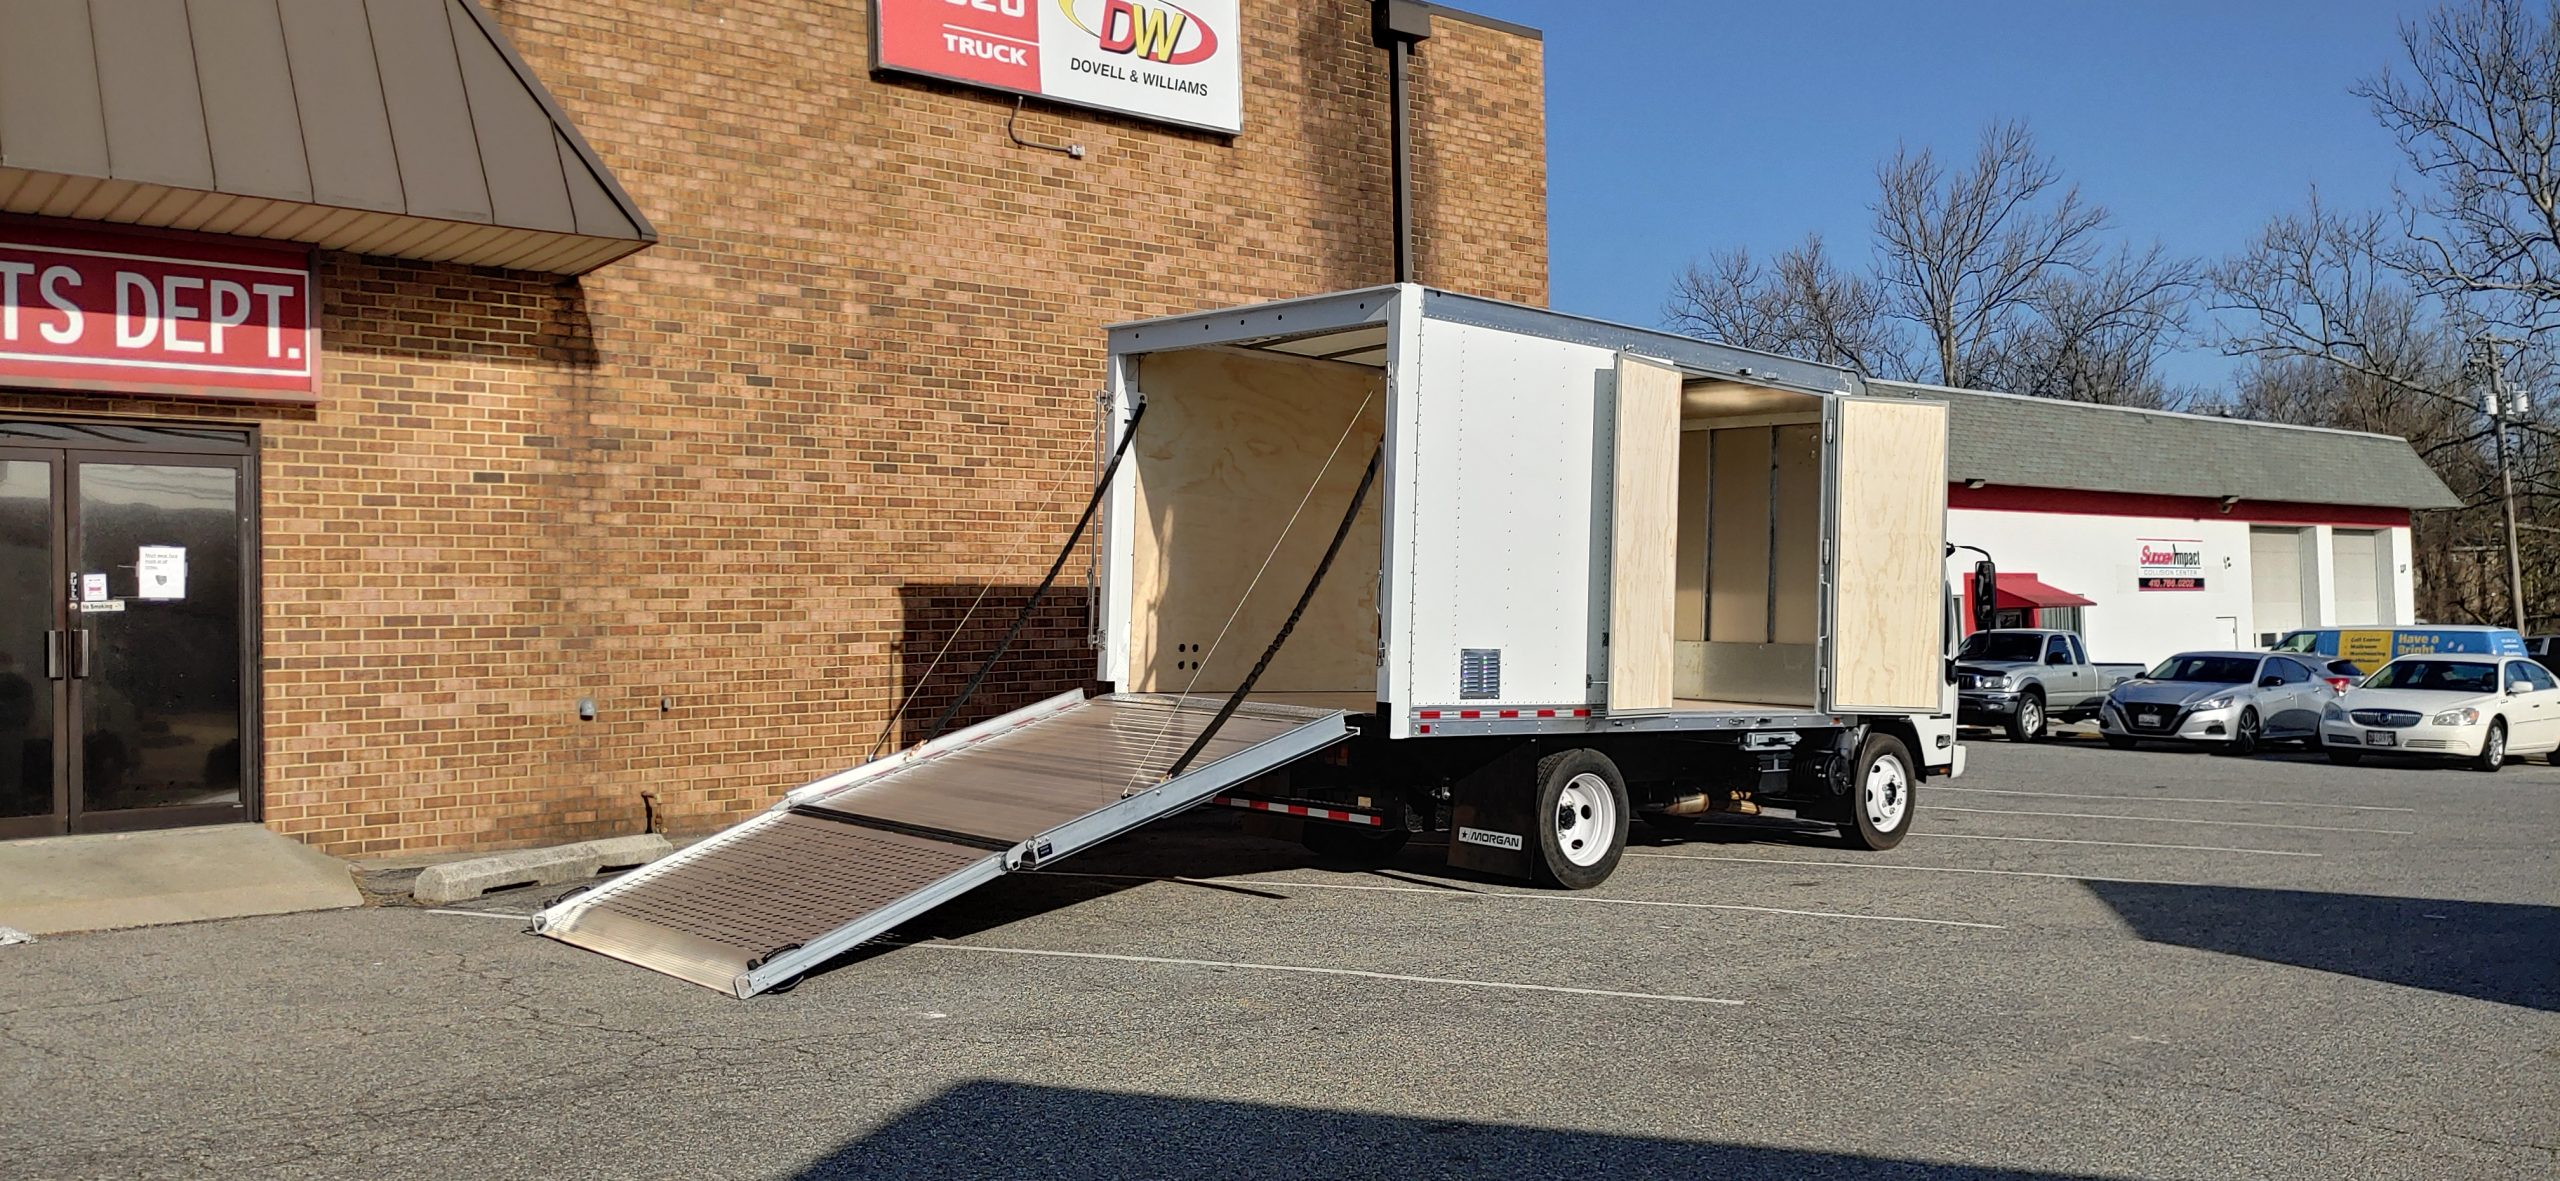 2021 NPR HD Gas Truck with Proscaper Body Pull down Ramp with Side doors 3 year Roadside Assistance 20210304_085003_HDR-scaled